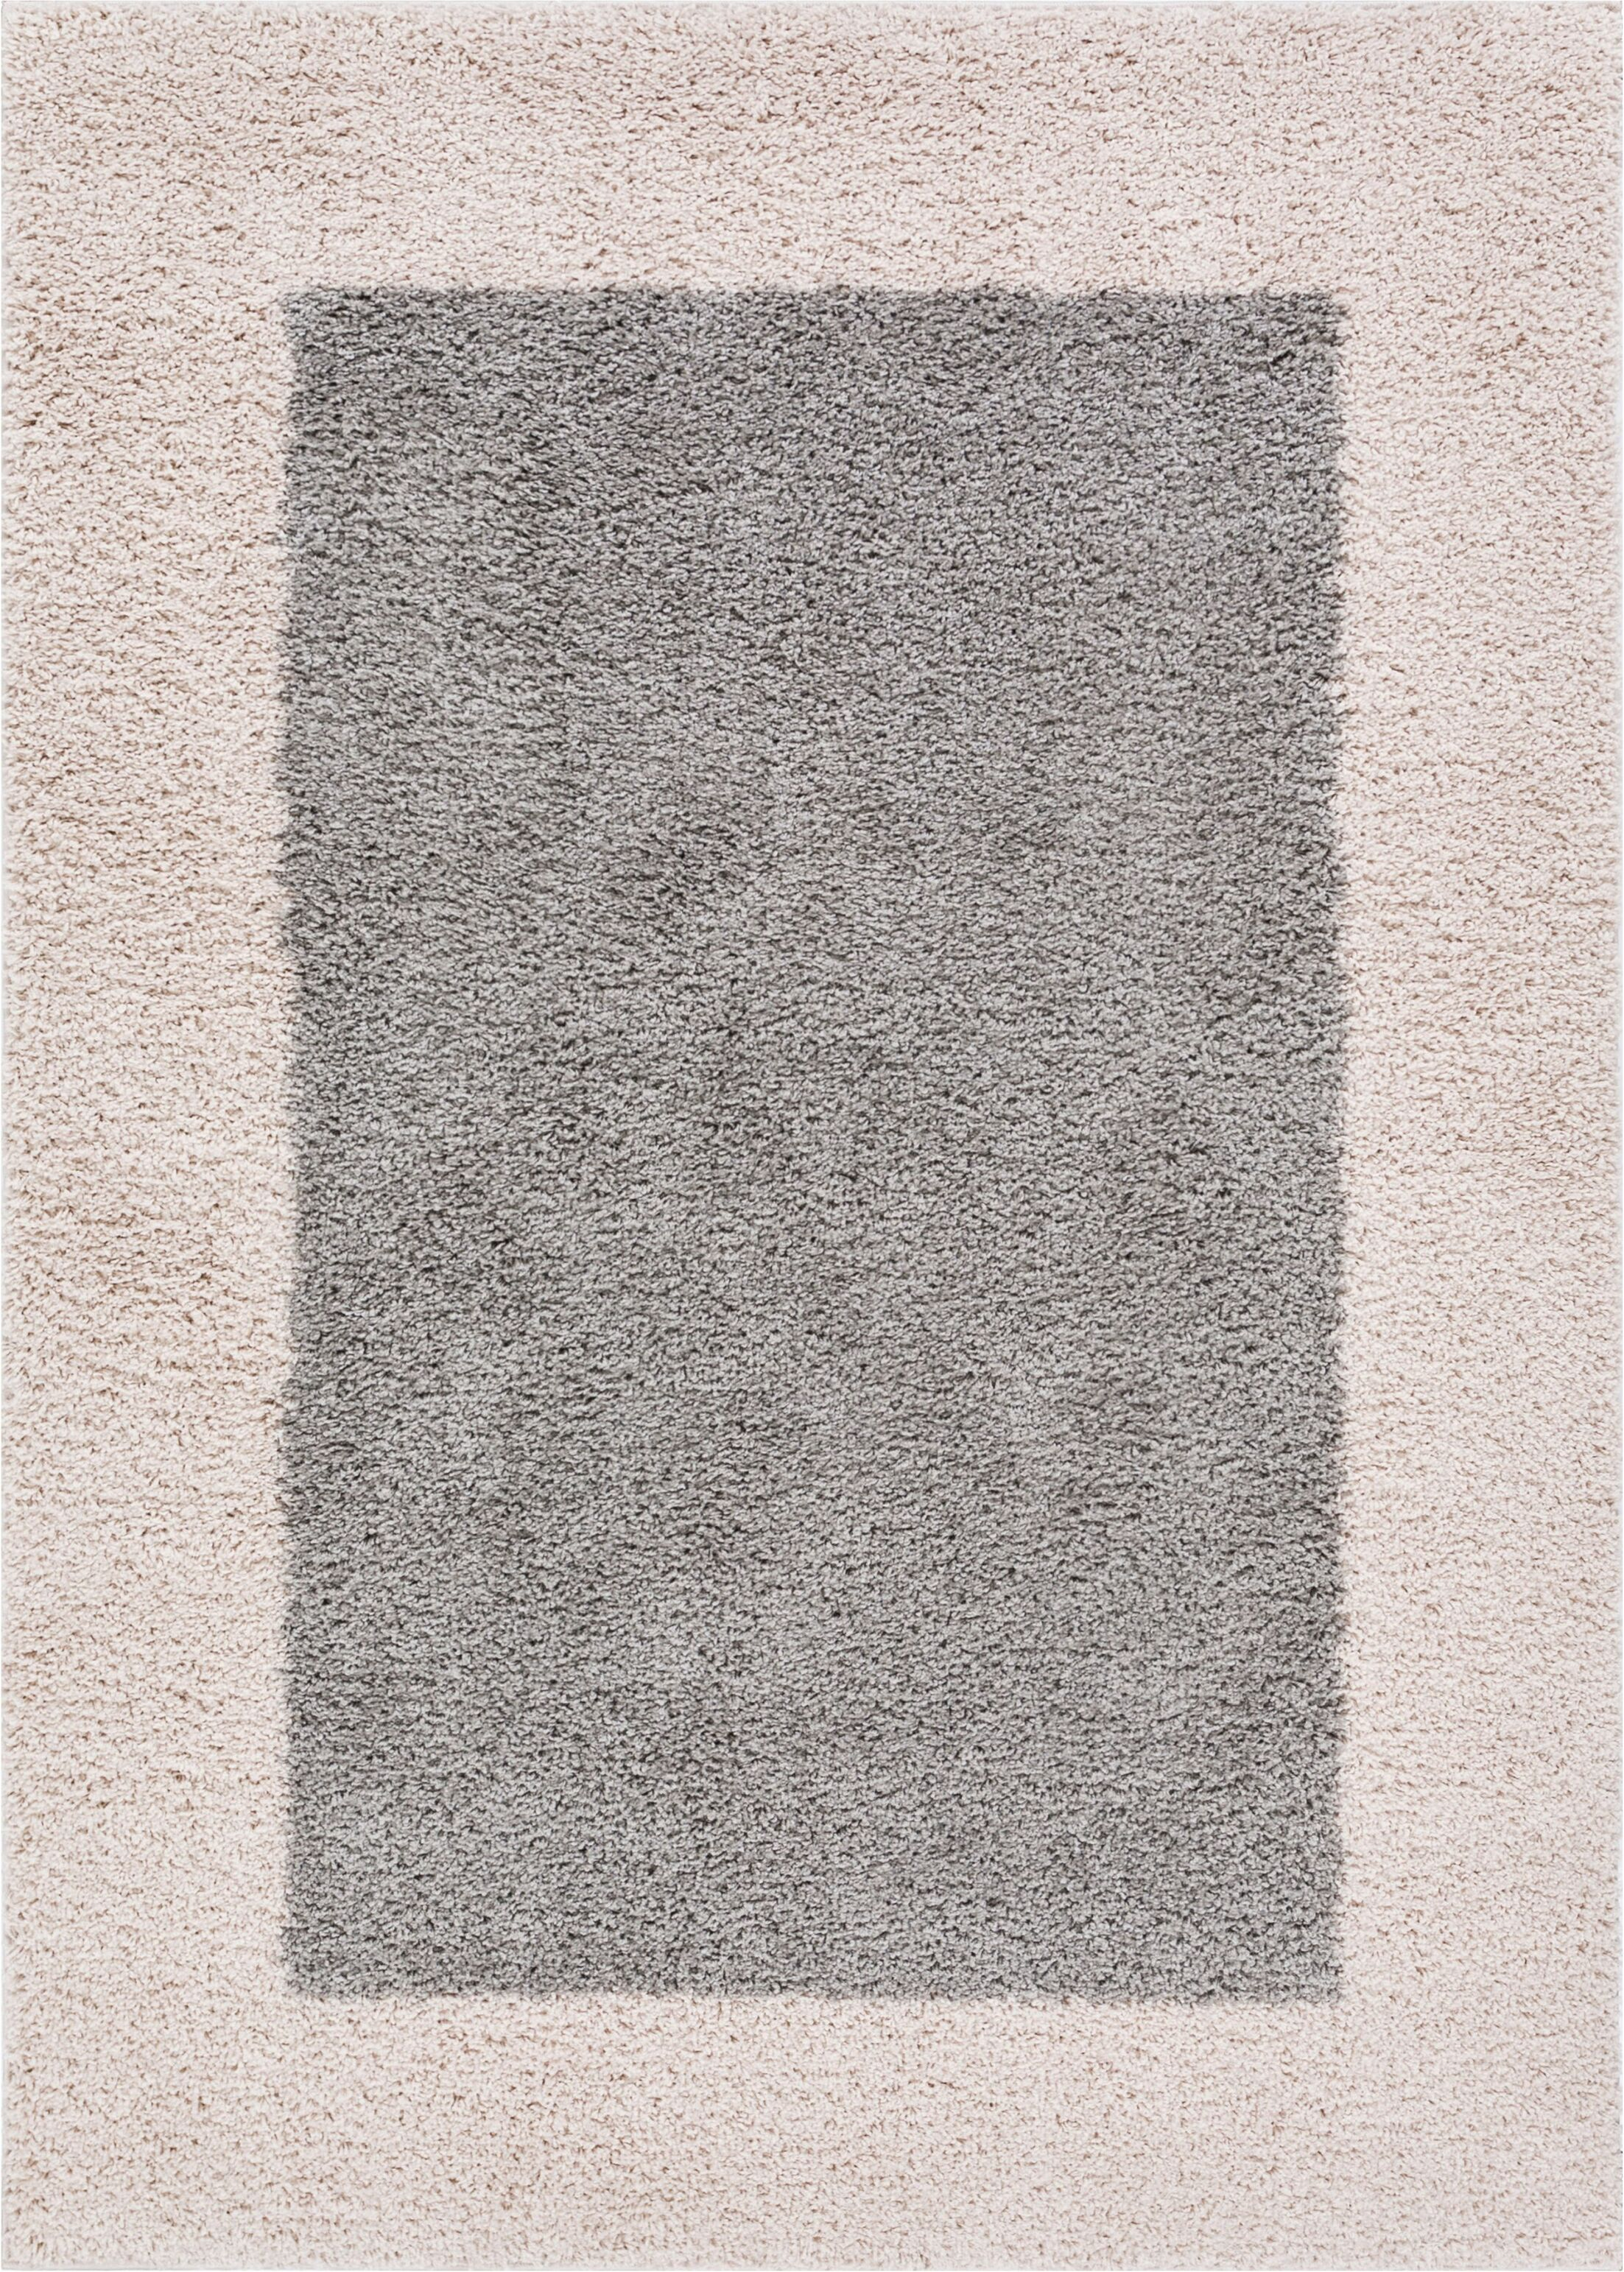 Dondre Gray Indoor Area Rug Rug Size: 5' x 7'2''